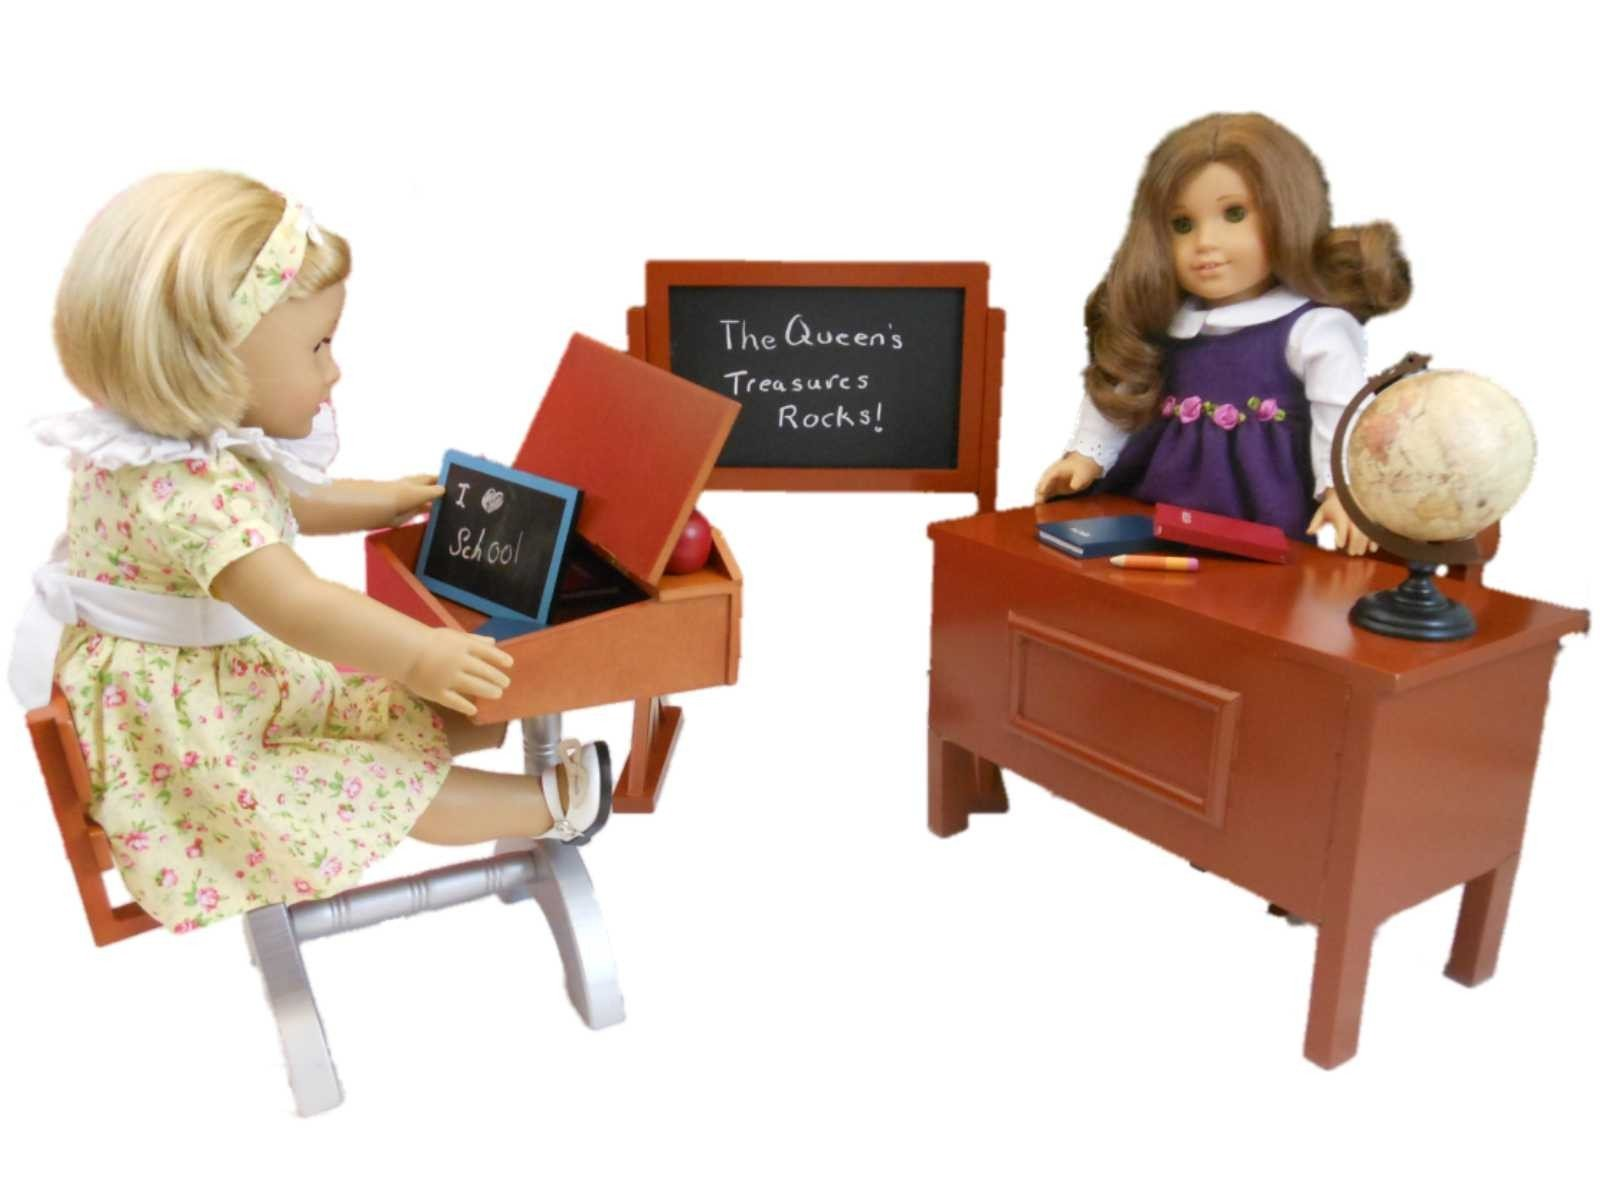 1930 Style School Desk Furniture Accessories For 18 Dolls American Girl Doll